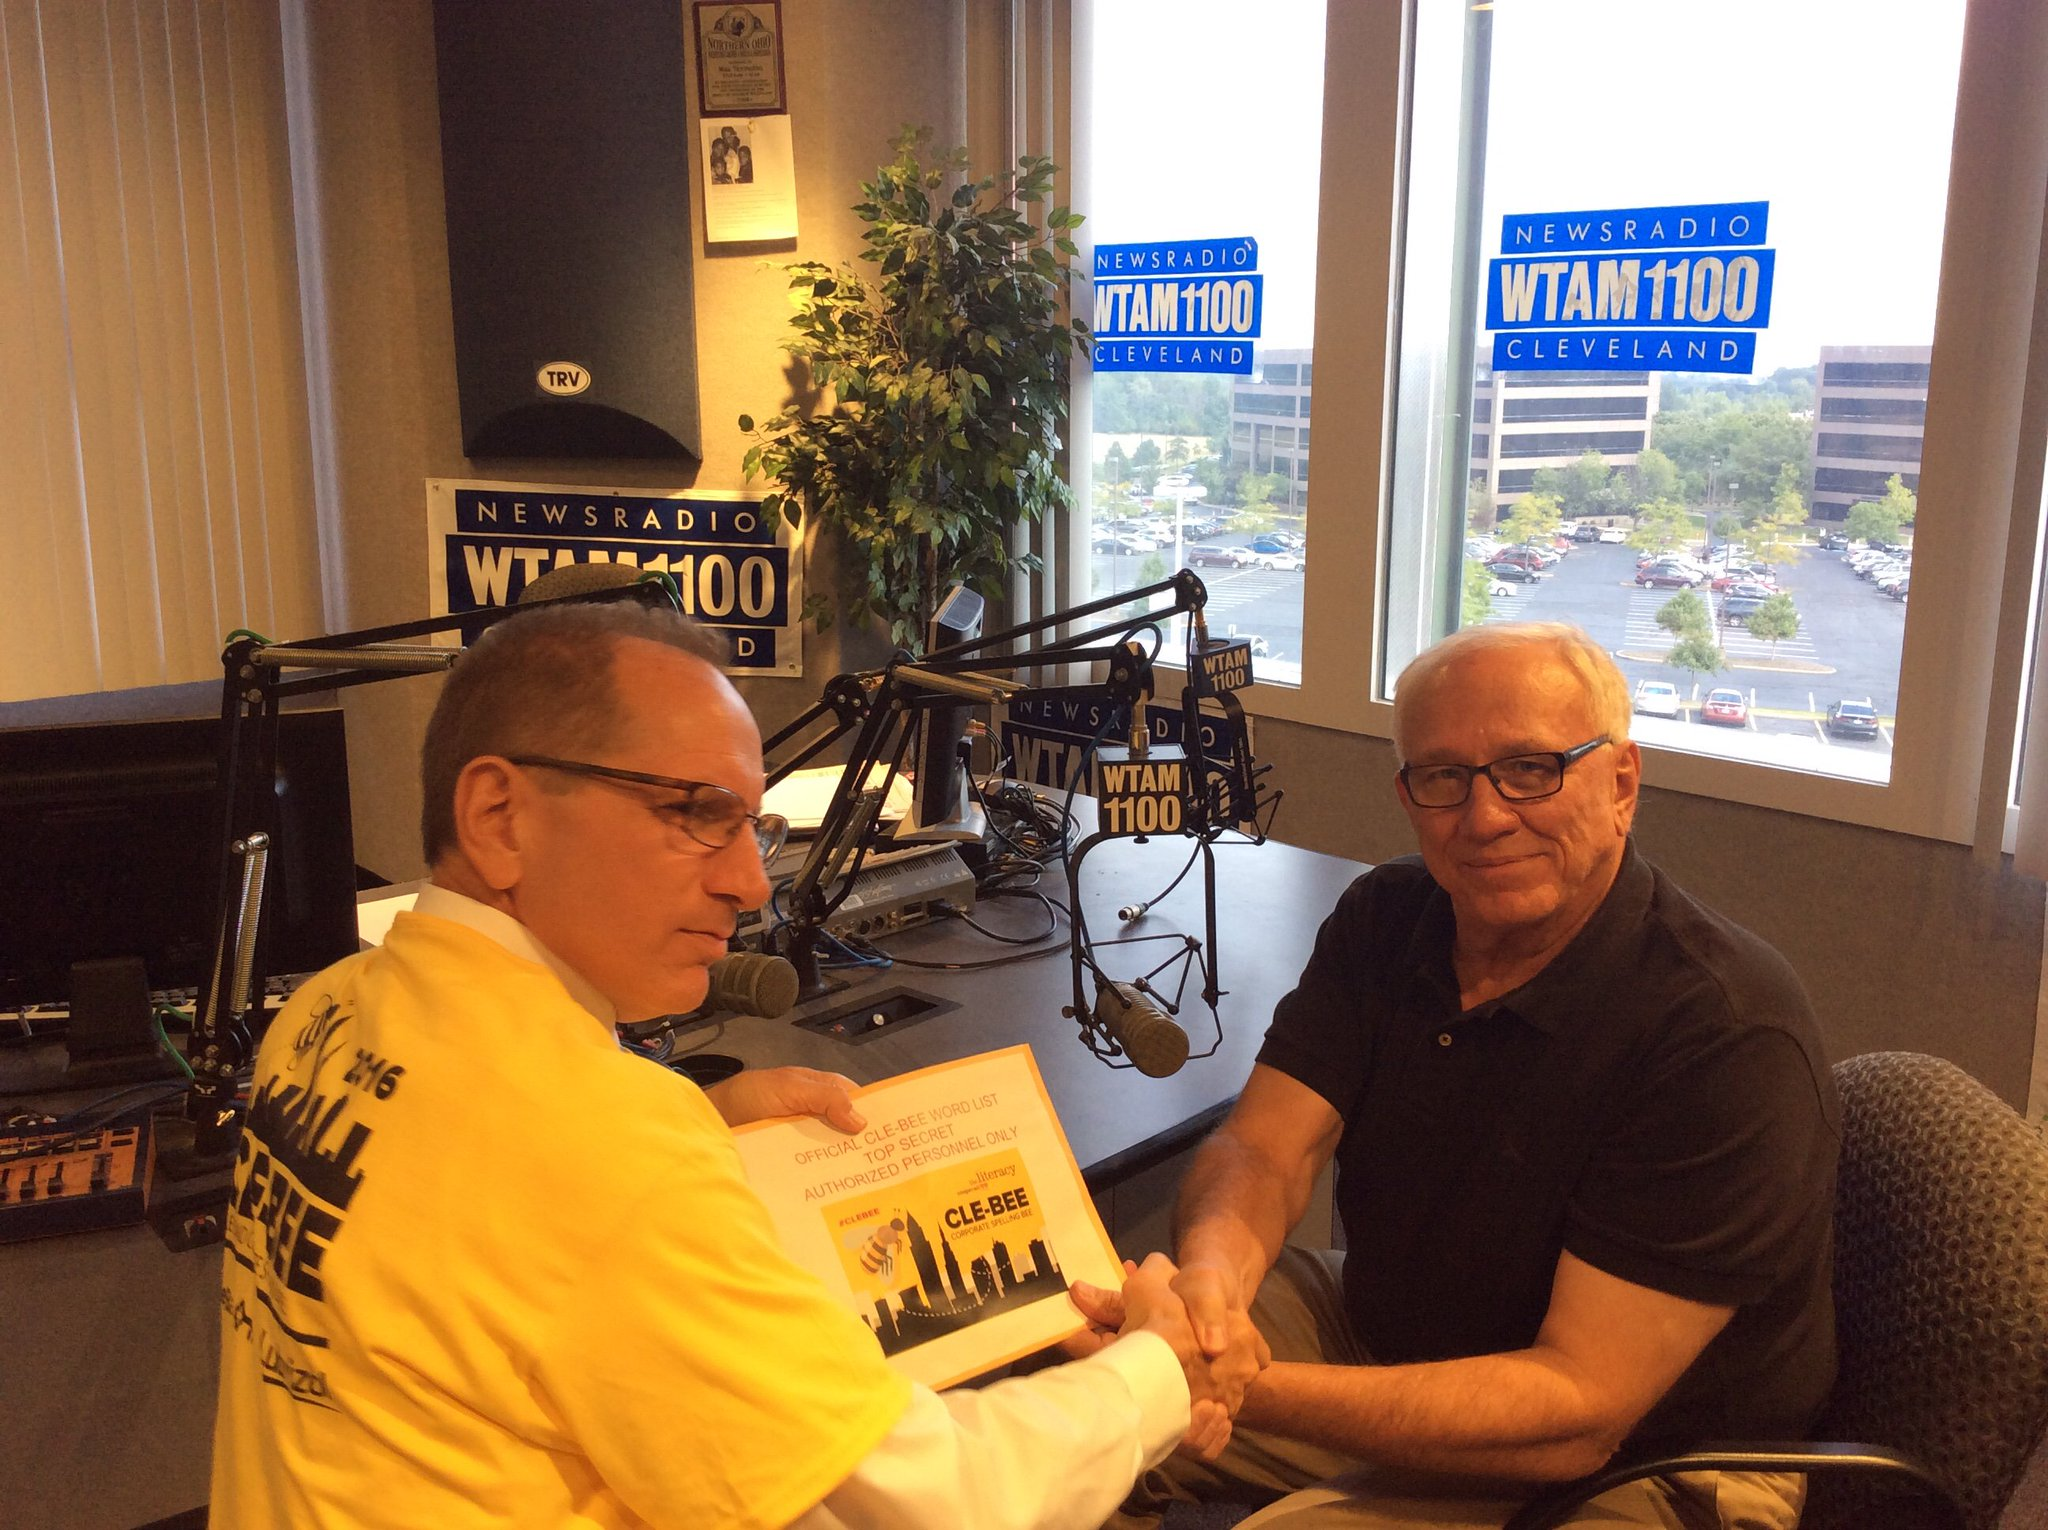 Delivering the words to #CLEBEE Reader Mike Snyder @snyder1100, @wtam1100 https://t.co/N3oVlLDQR3